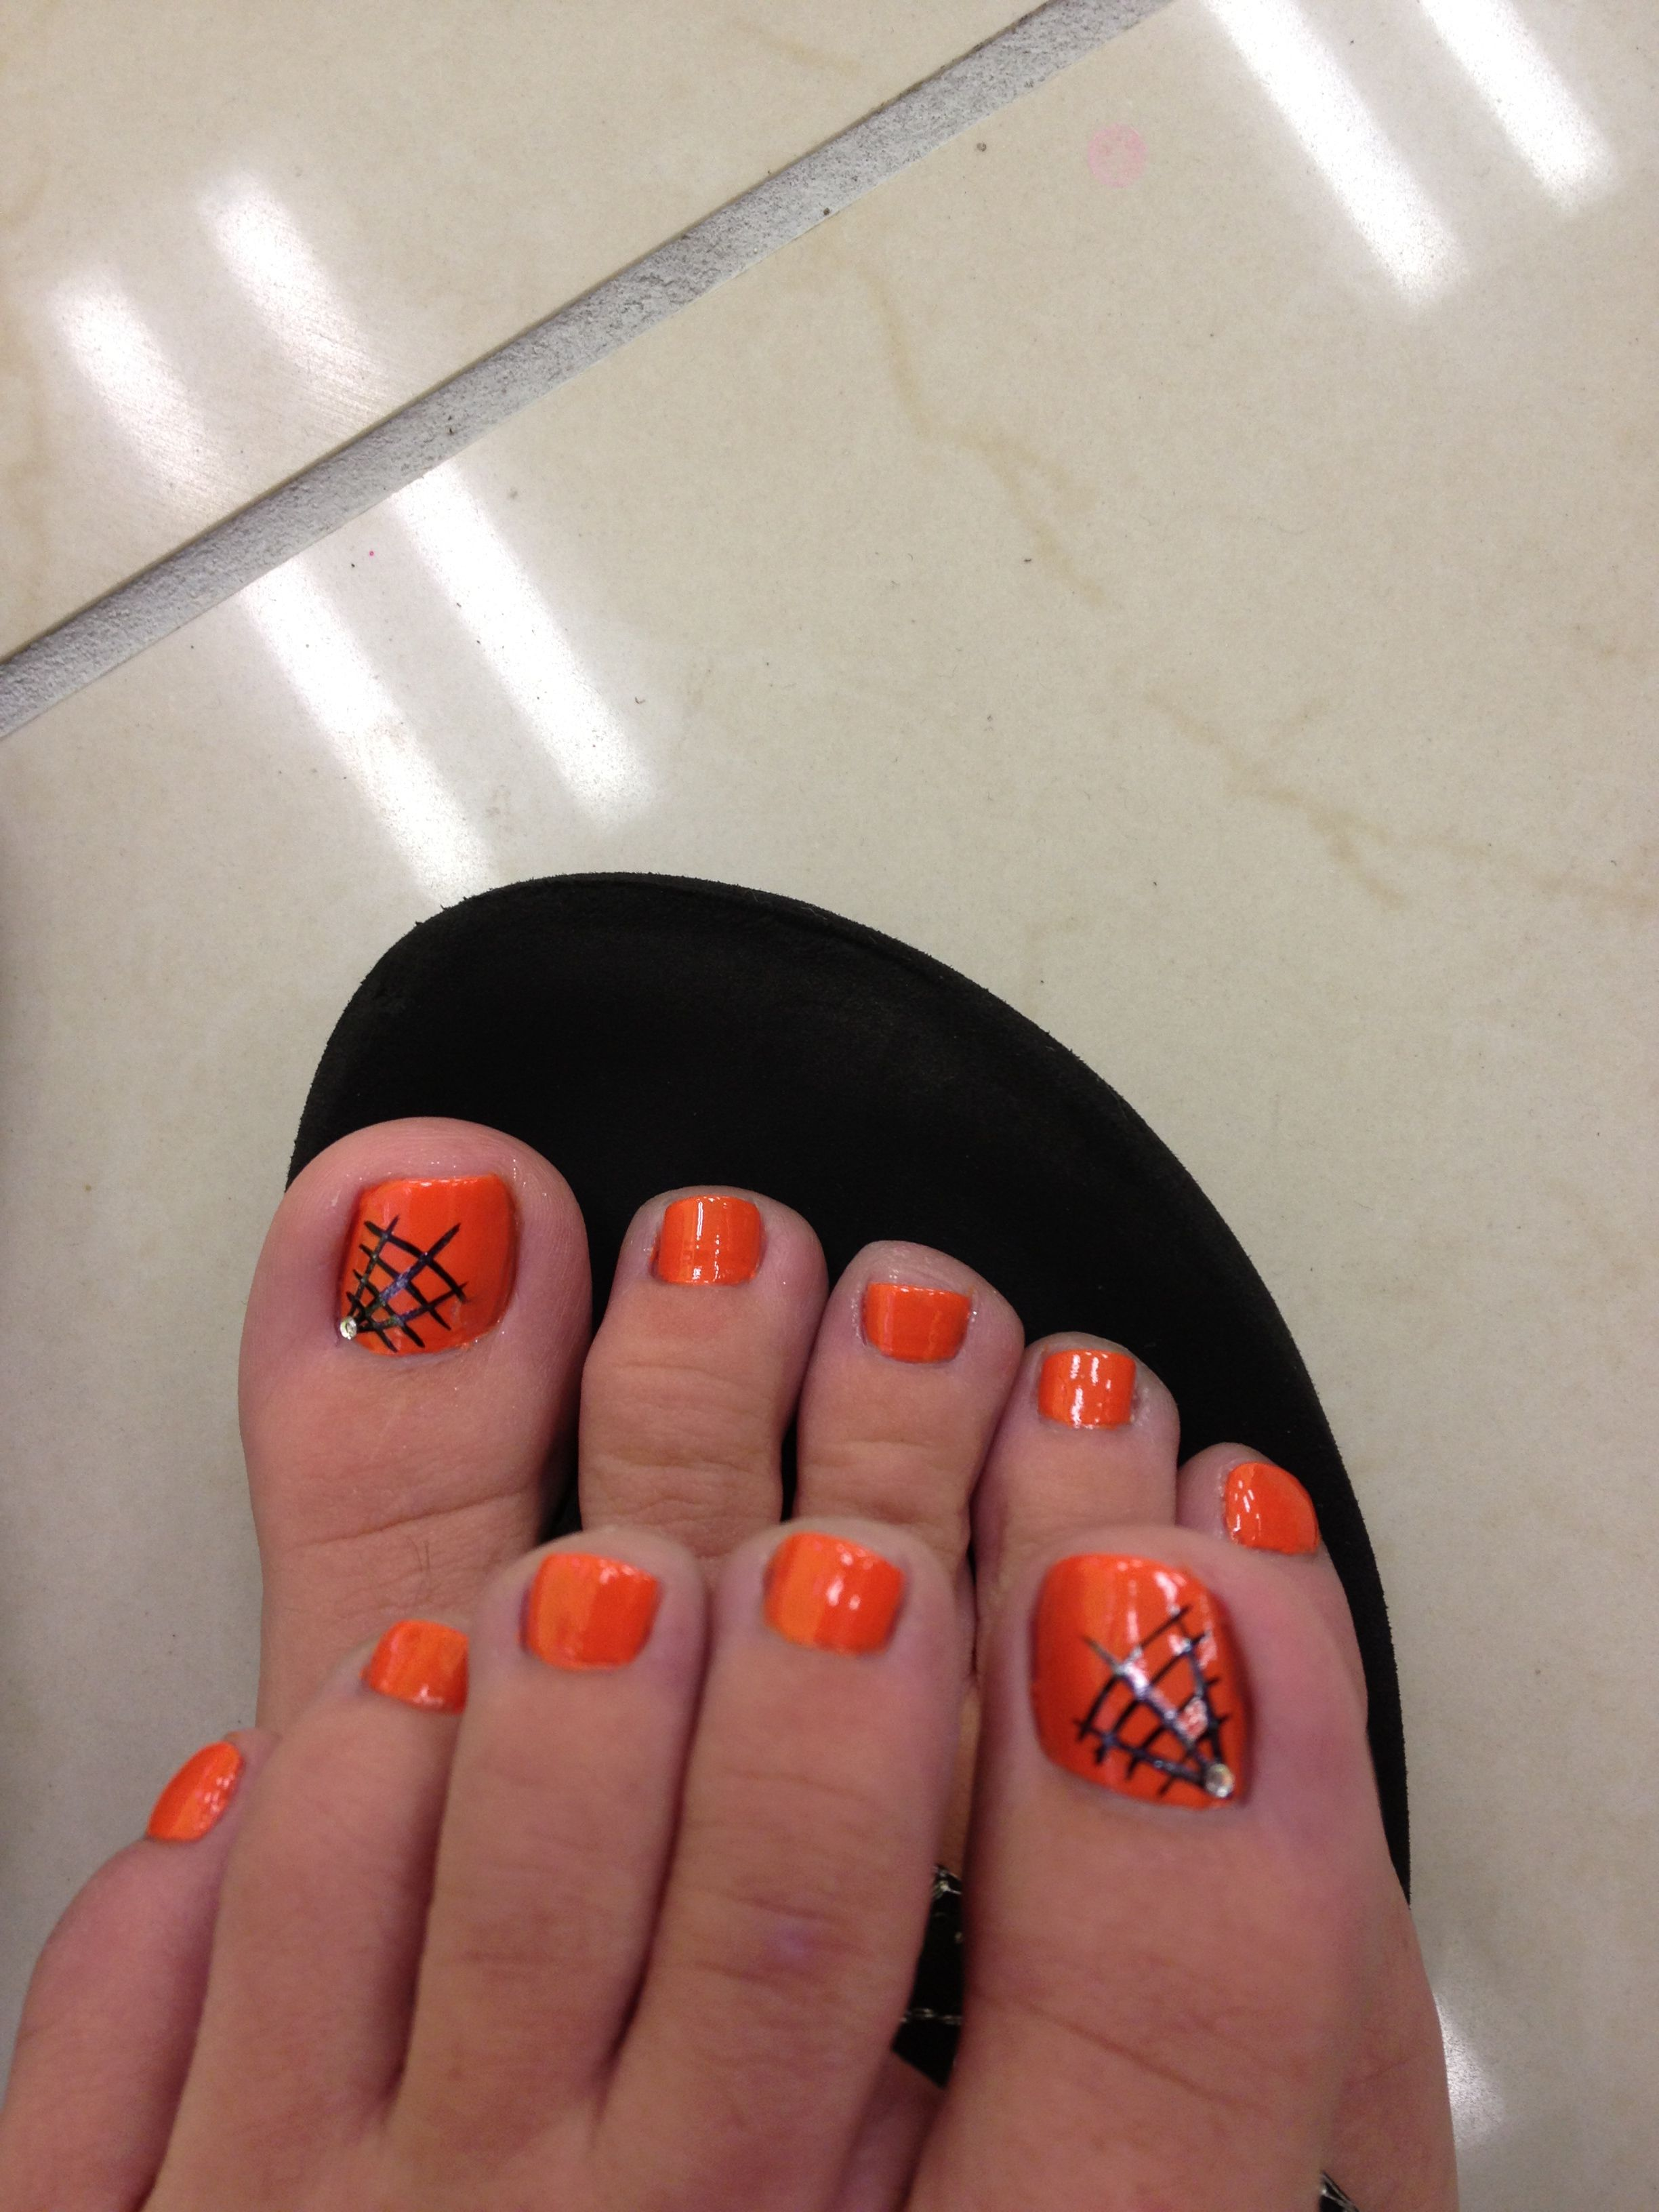 Pin By Kendra Morgan On My Style Halloween Toe Nails Fall Toe Nails Painted Toe Nails